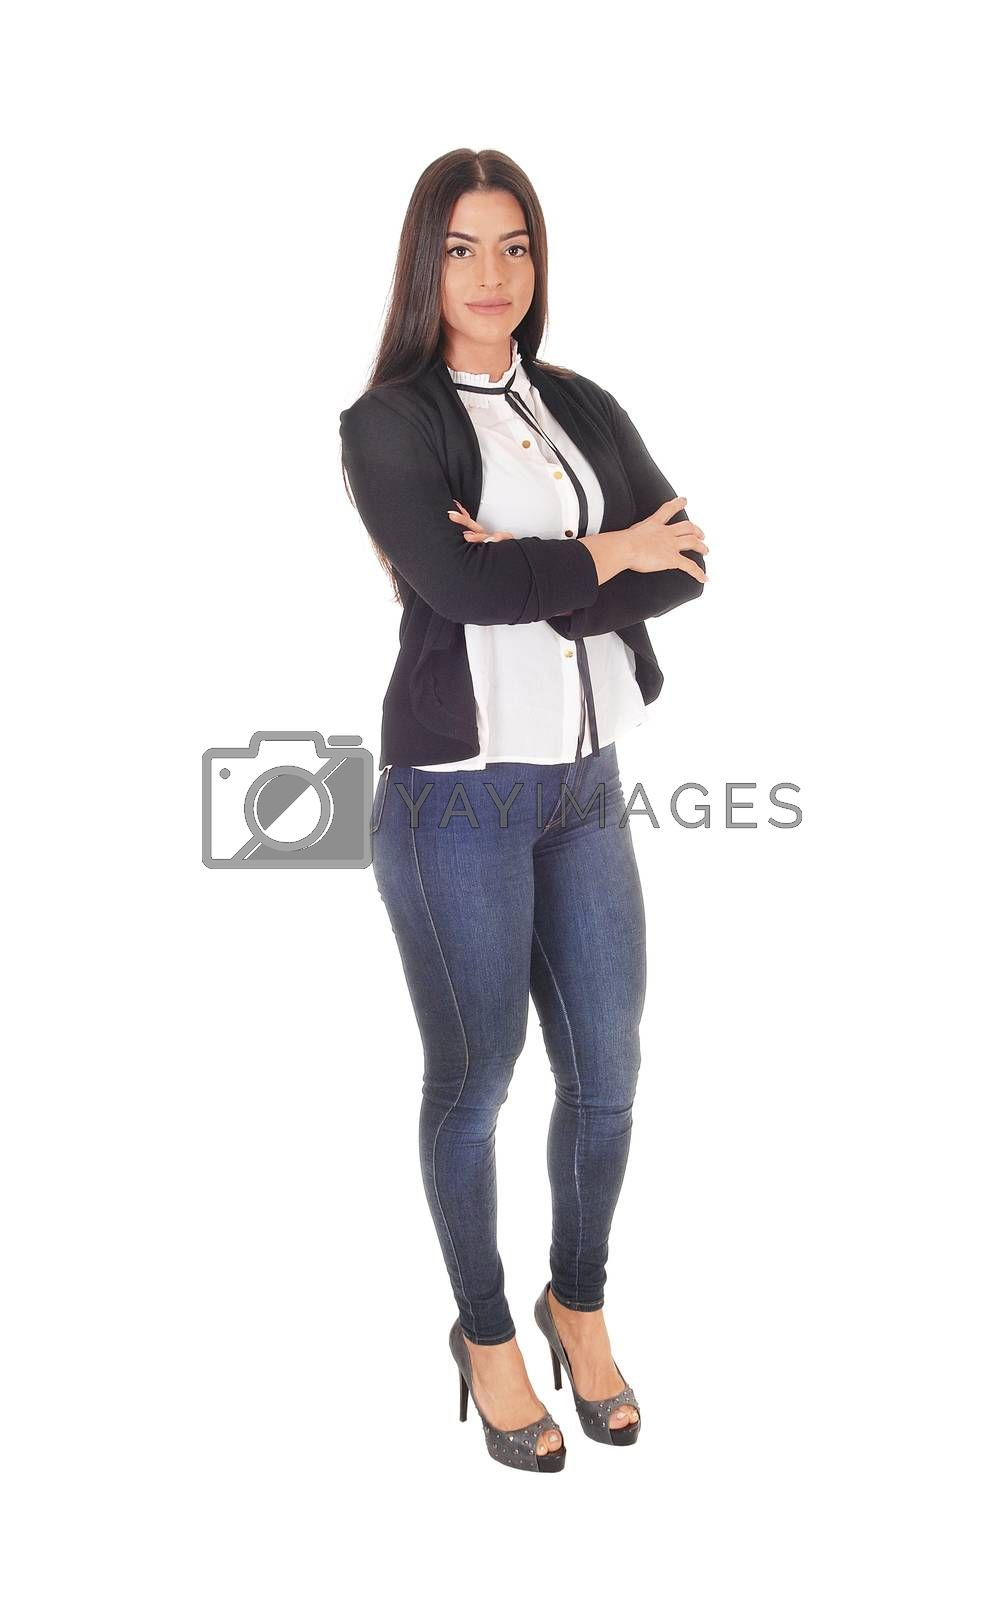 A gorgeous young woman standing in jeans and a black jacket business outfit from the front, isolated for white background